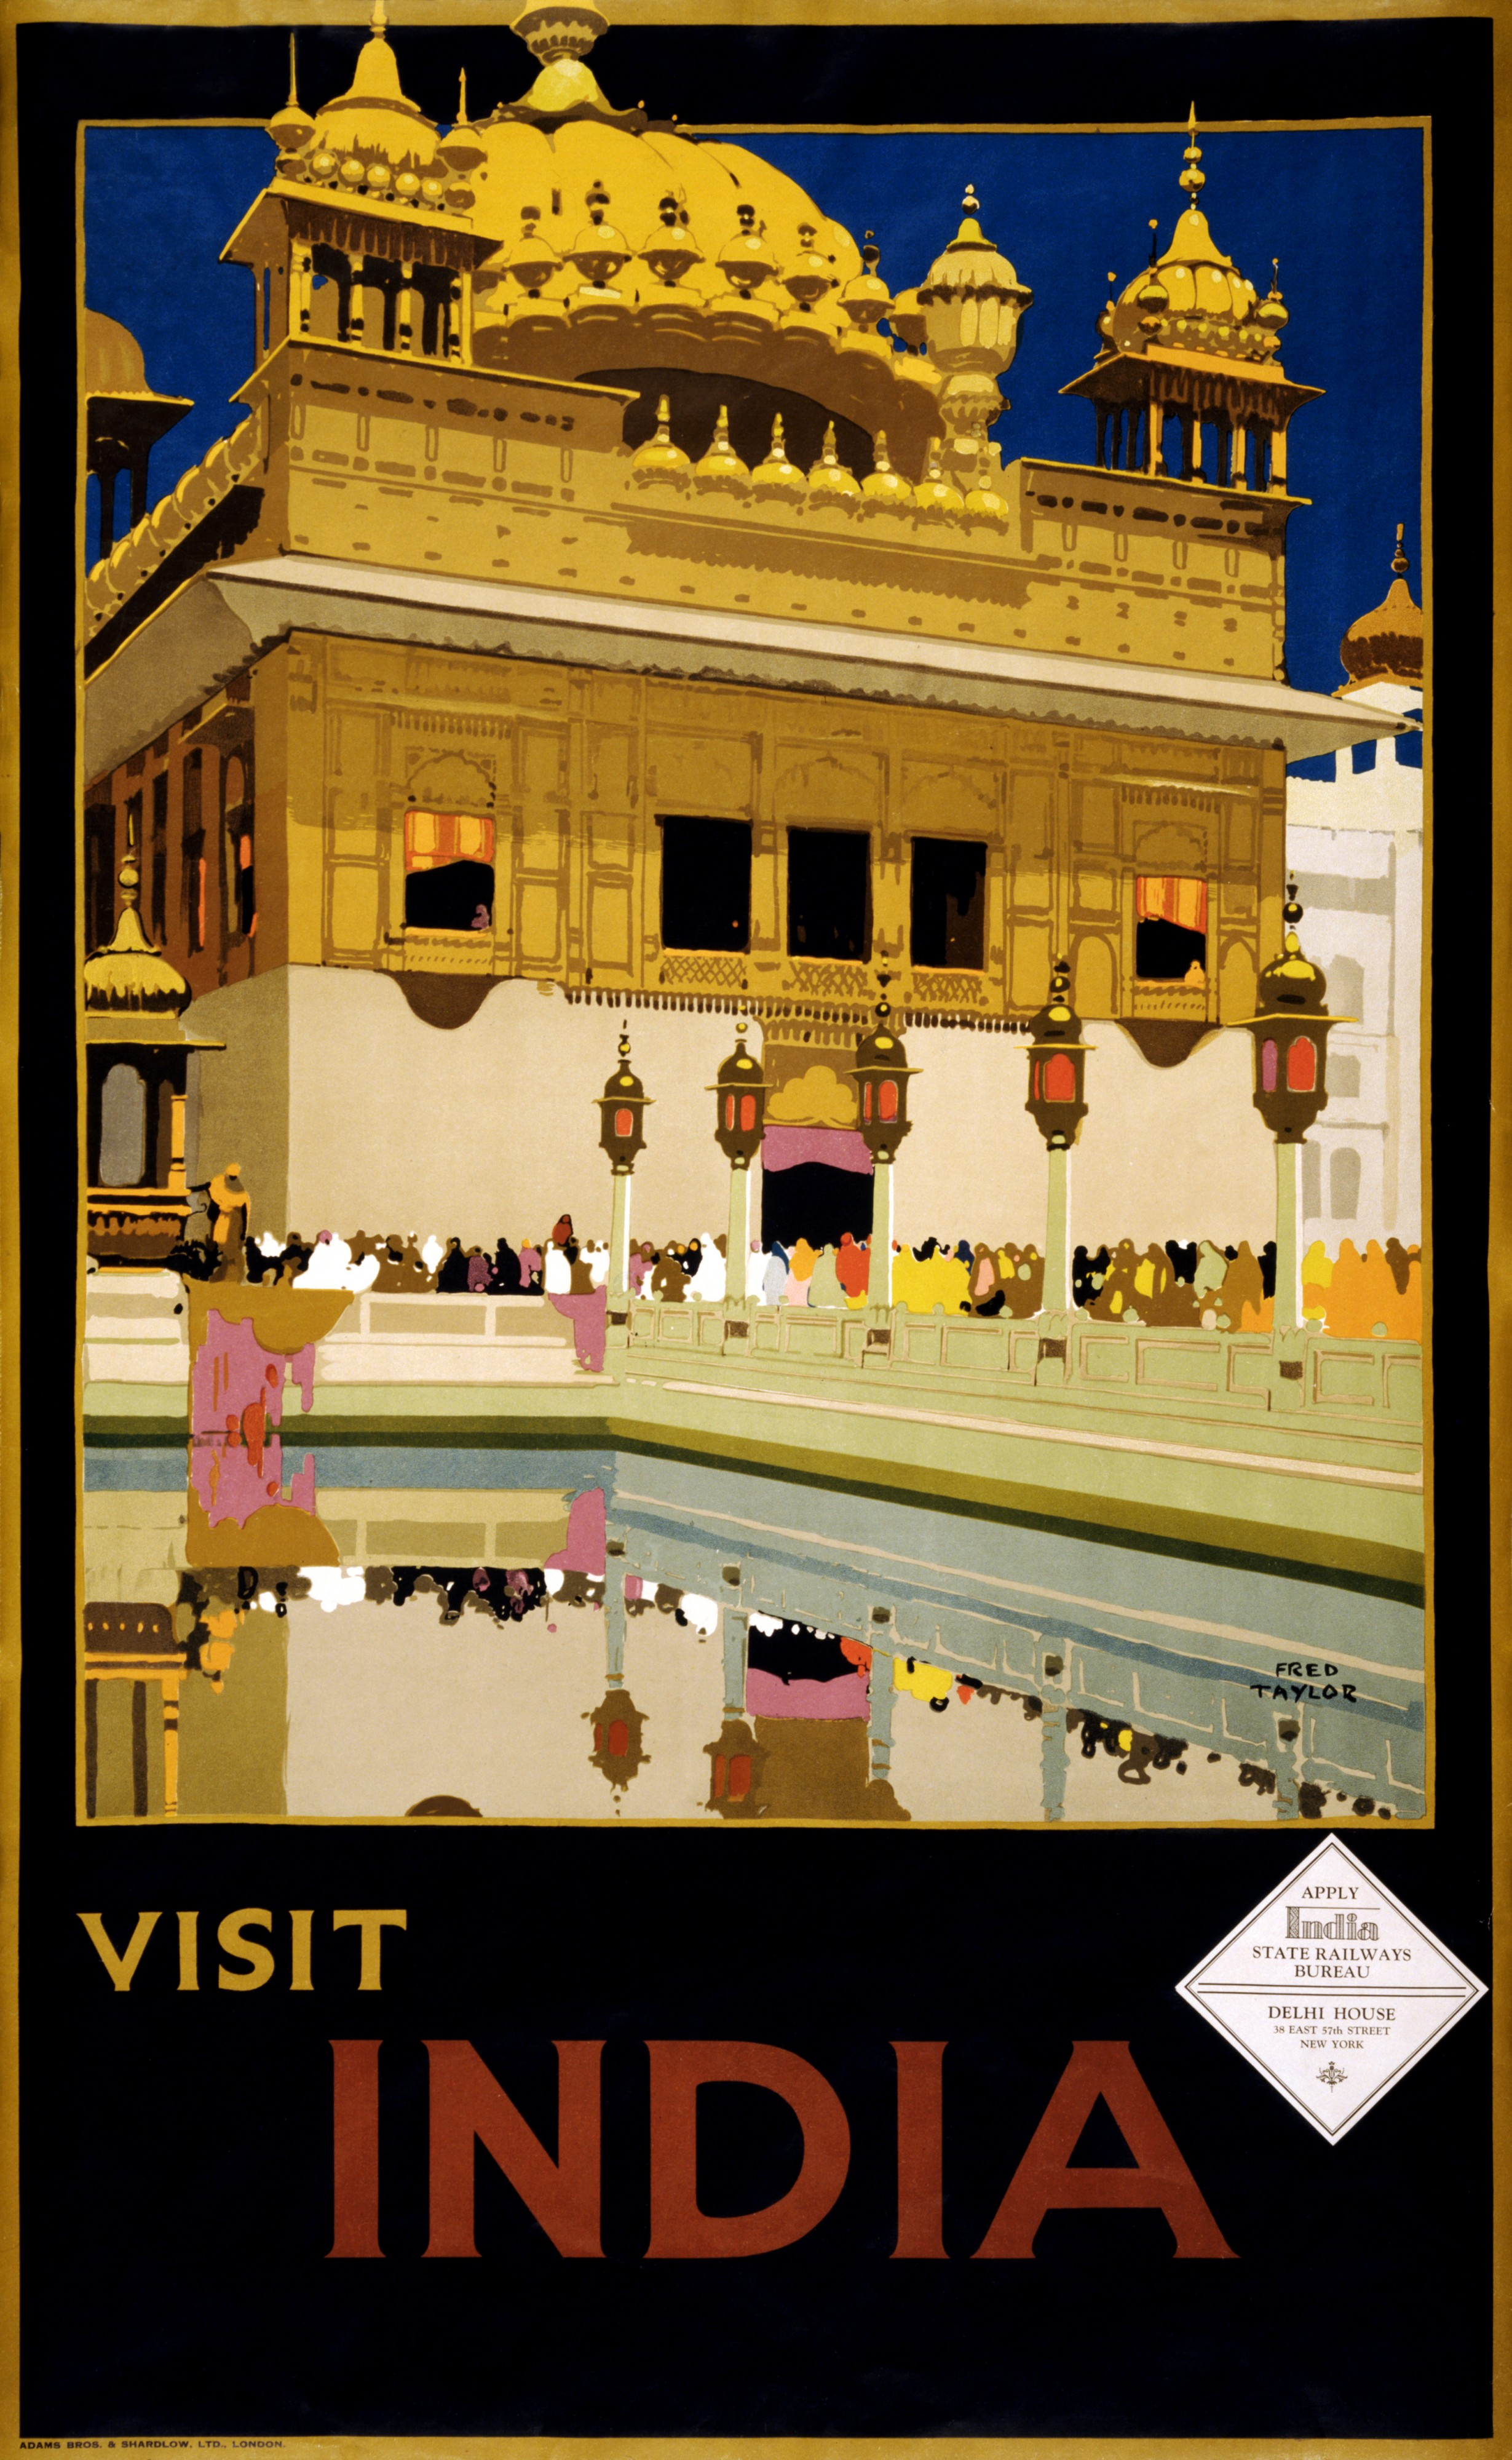 Visit India, travel poster, ca. 1935